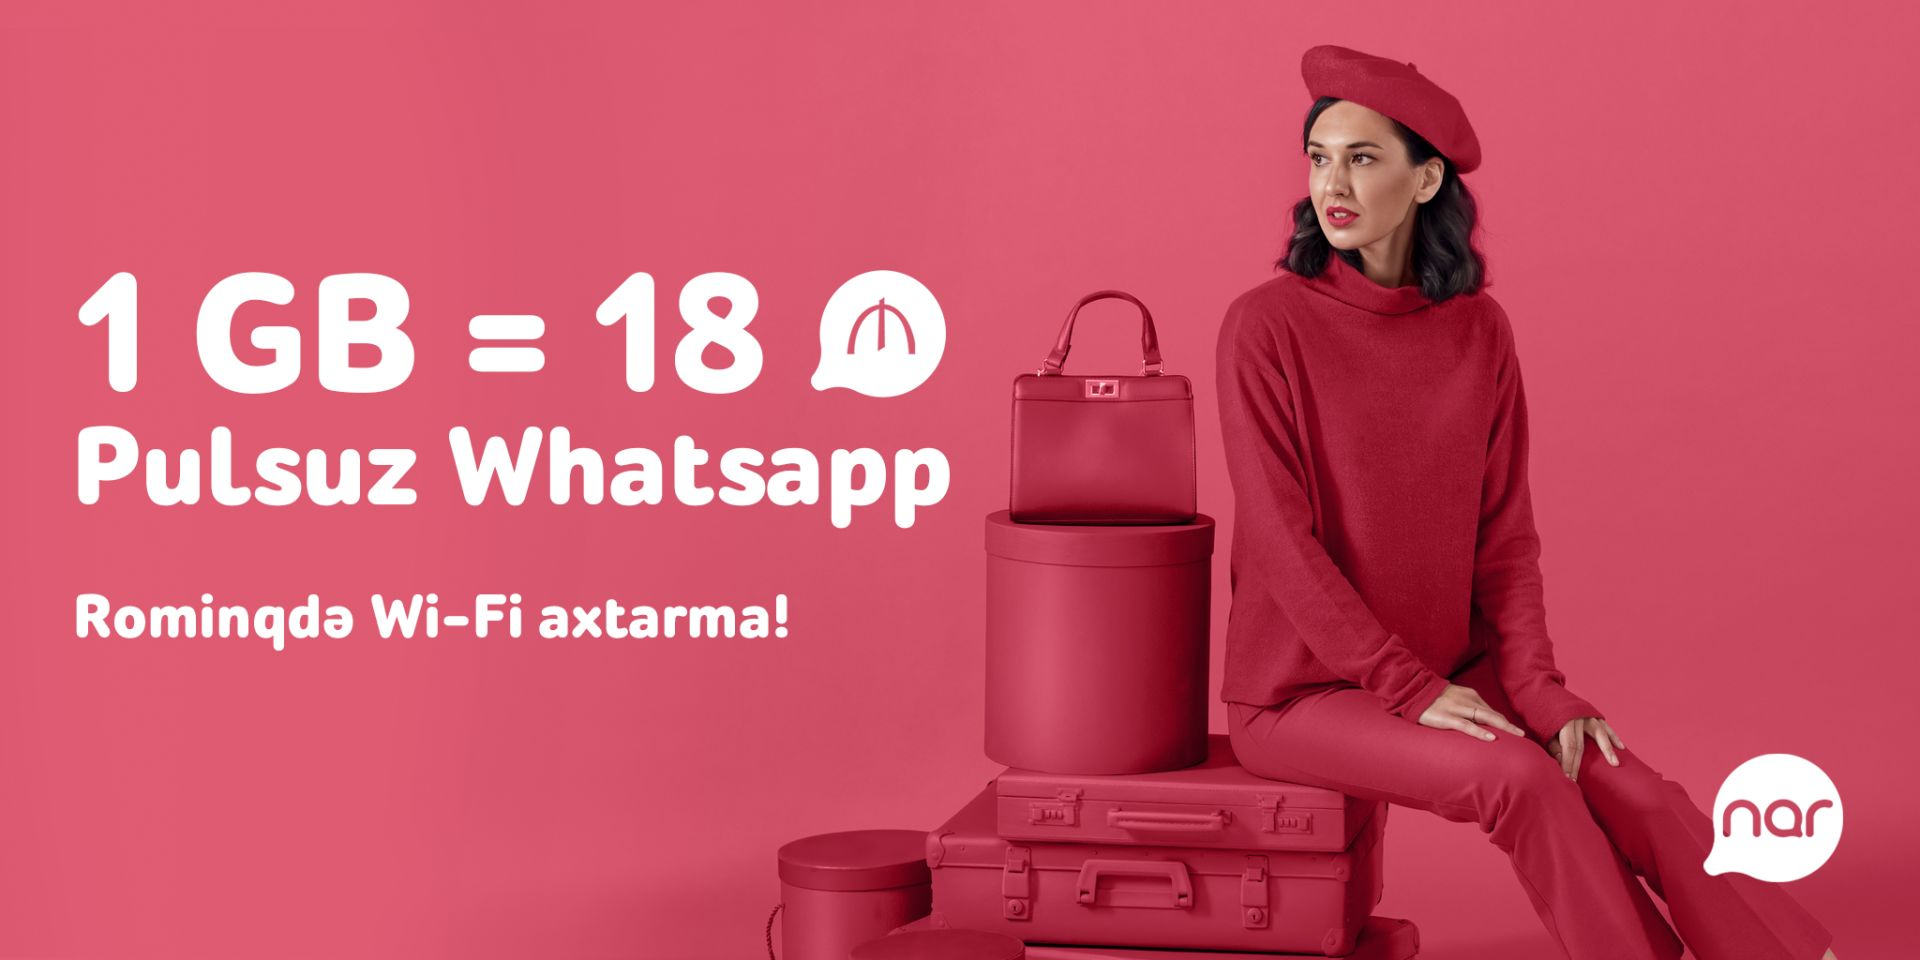 Use free WhatsApp abroad with your Nar number - Gallery Image